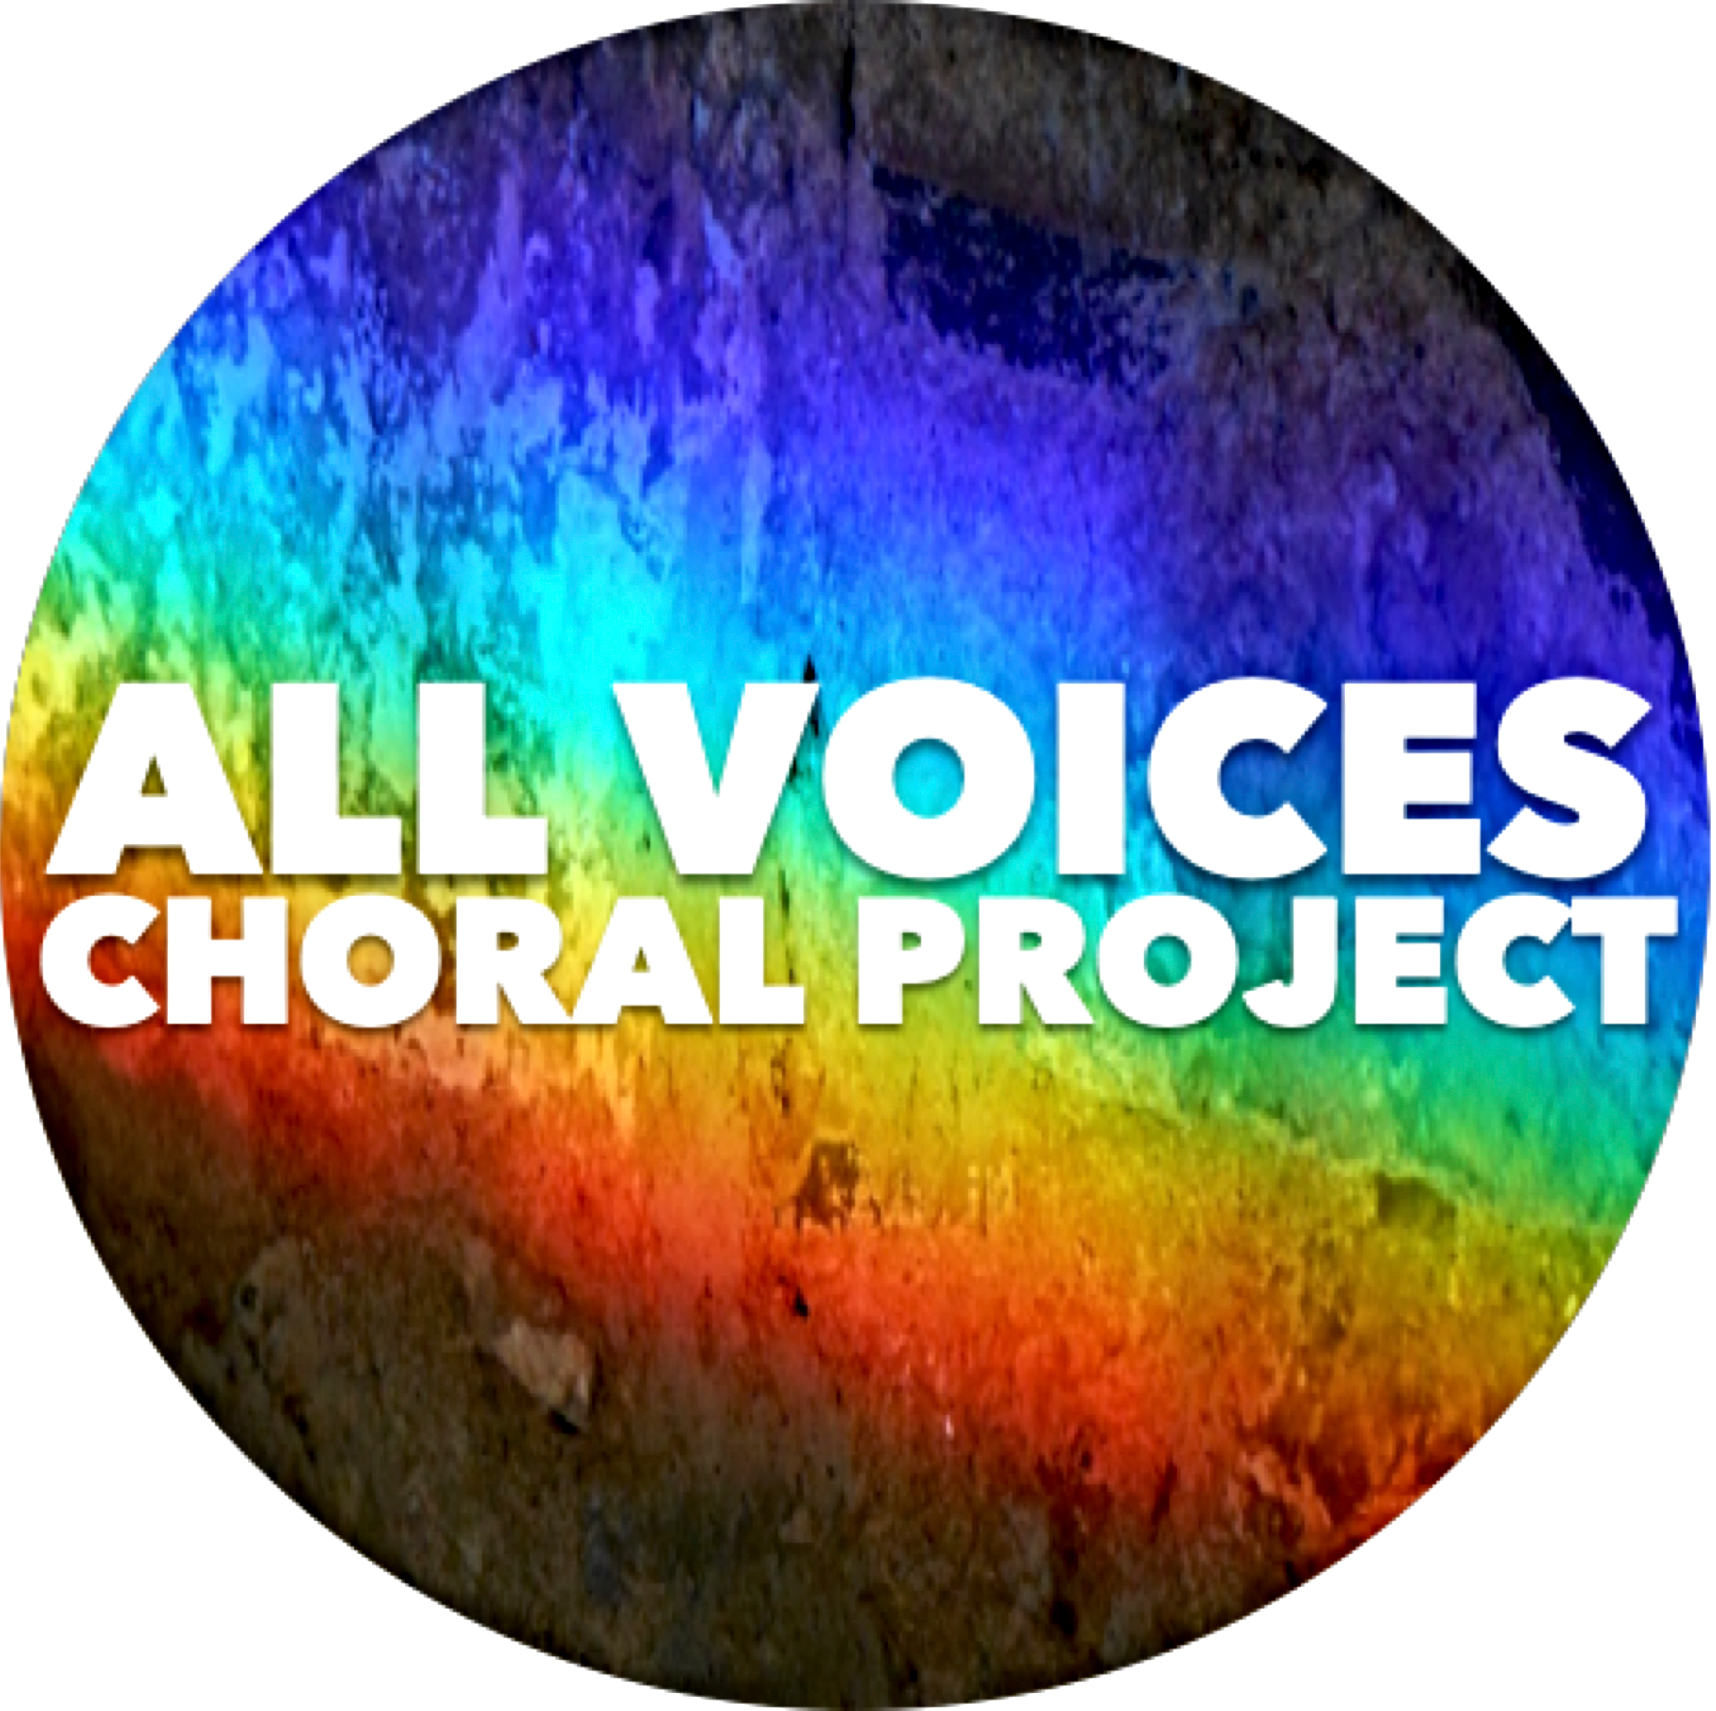 ALL VOICES CHORAL PROJECT